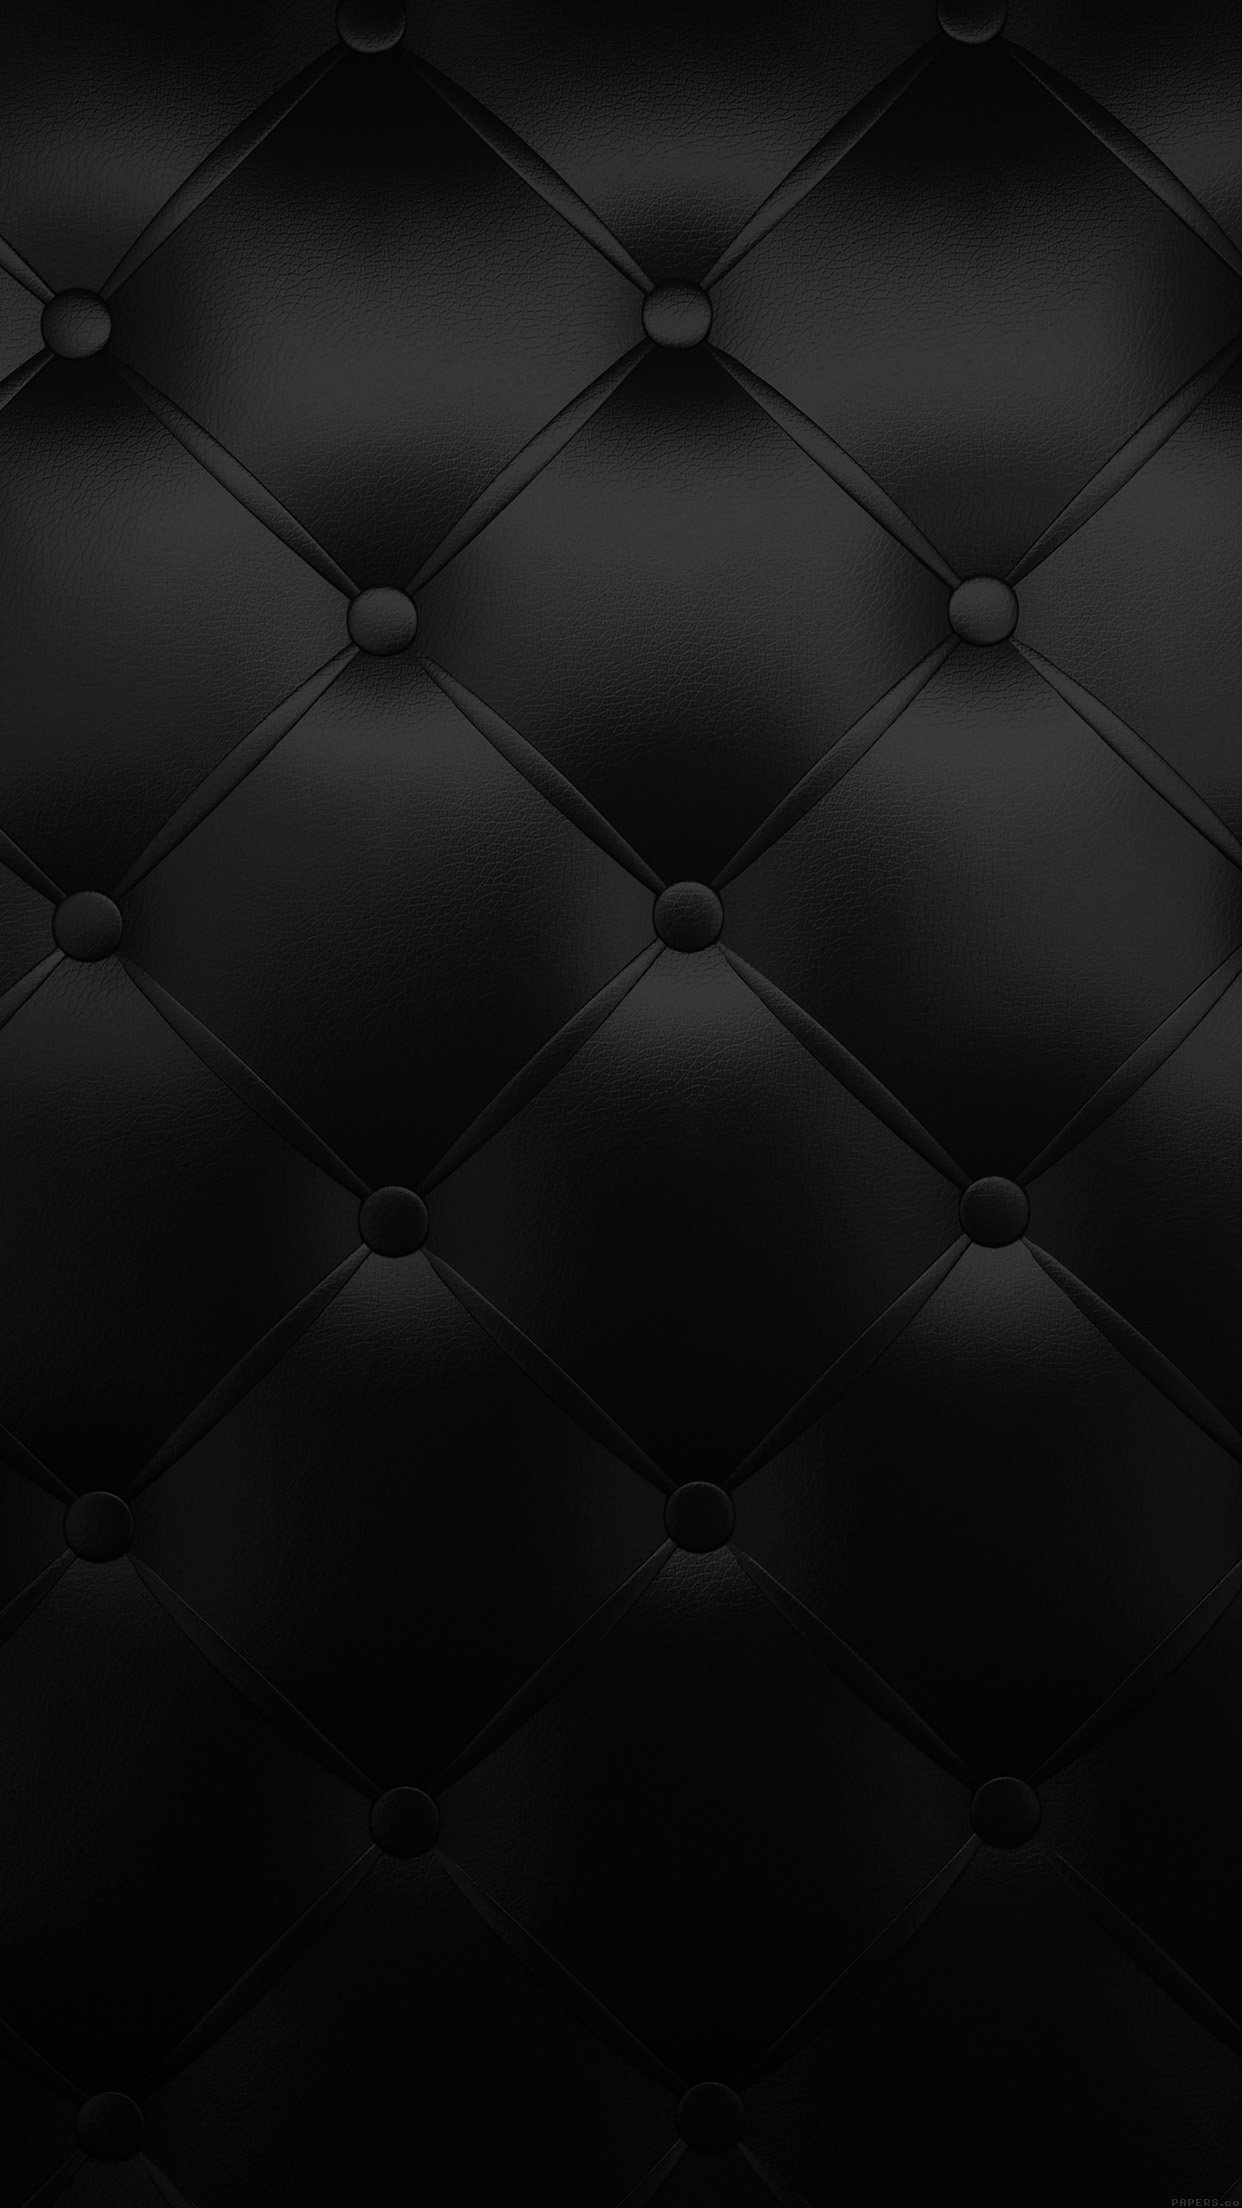 Unduh 200 Wallpaper Black Iphone 7 Plus HD